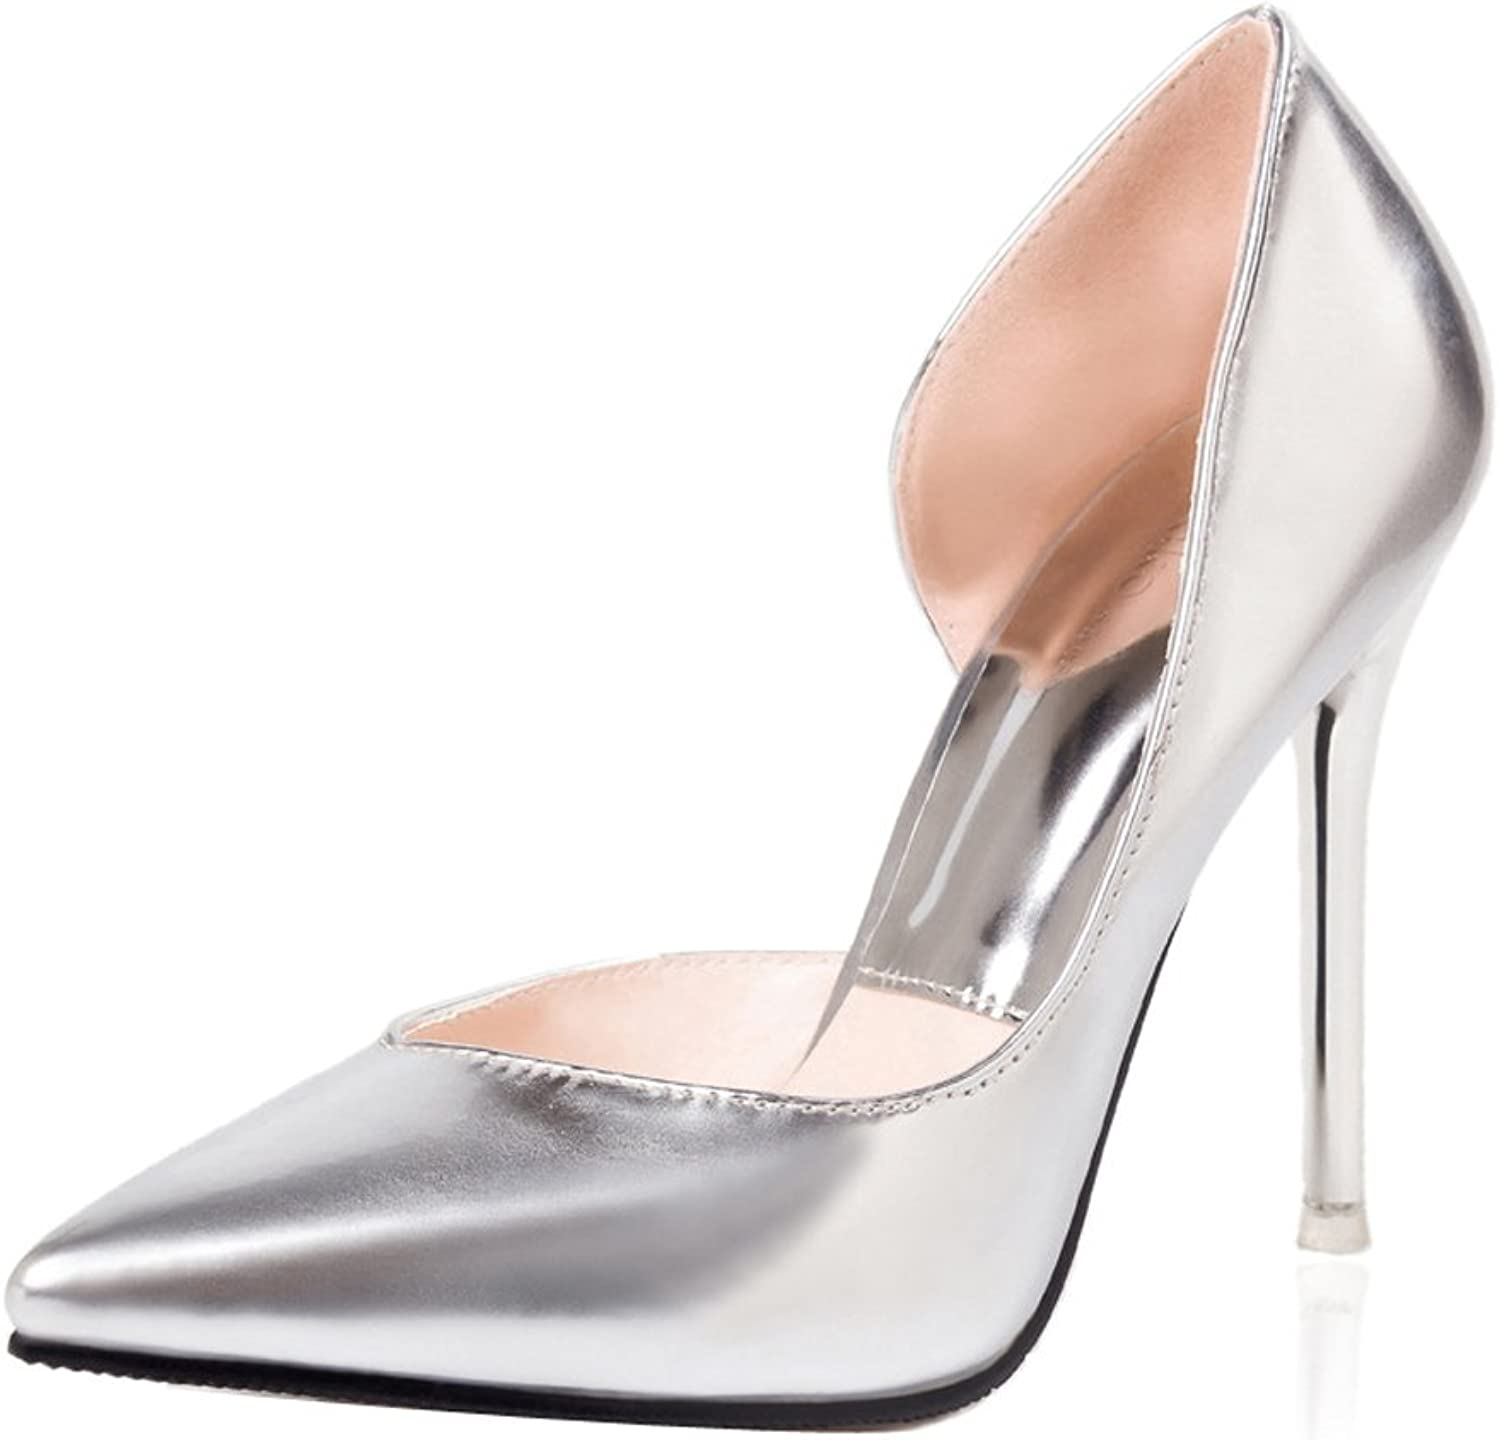 Ladola Womens Professional Pointed-Toe Light-Weight Spikes Stilettos Microfiber Pumps shoes